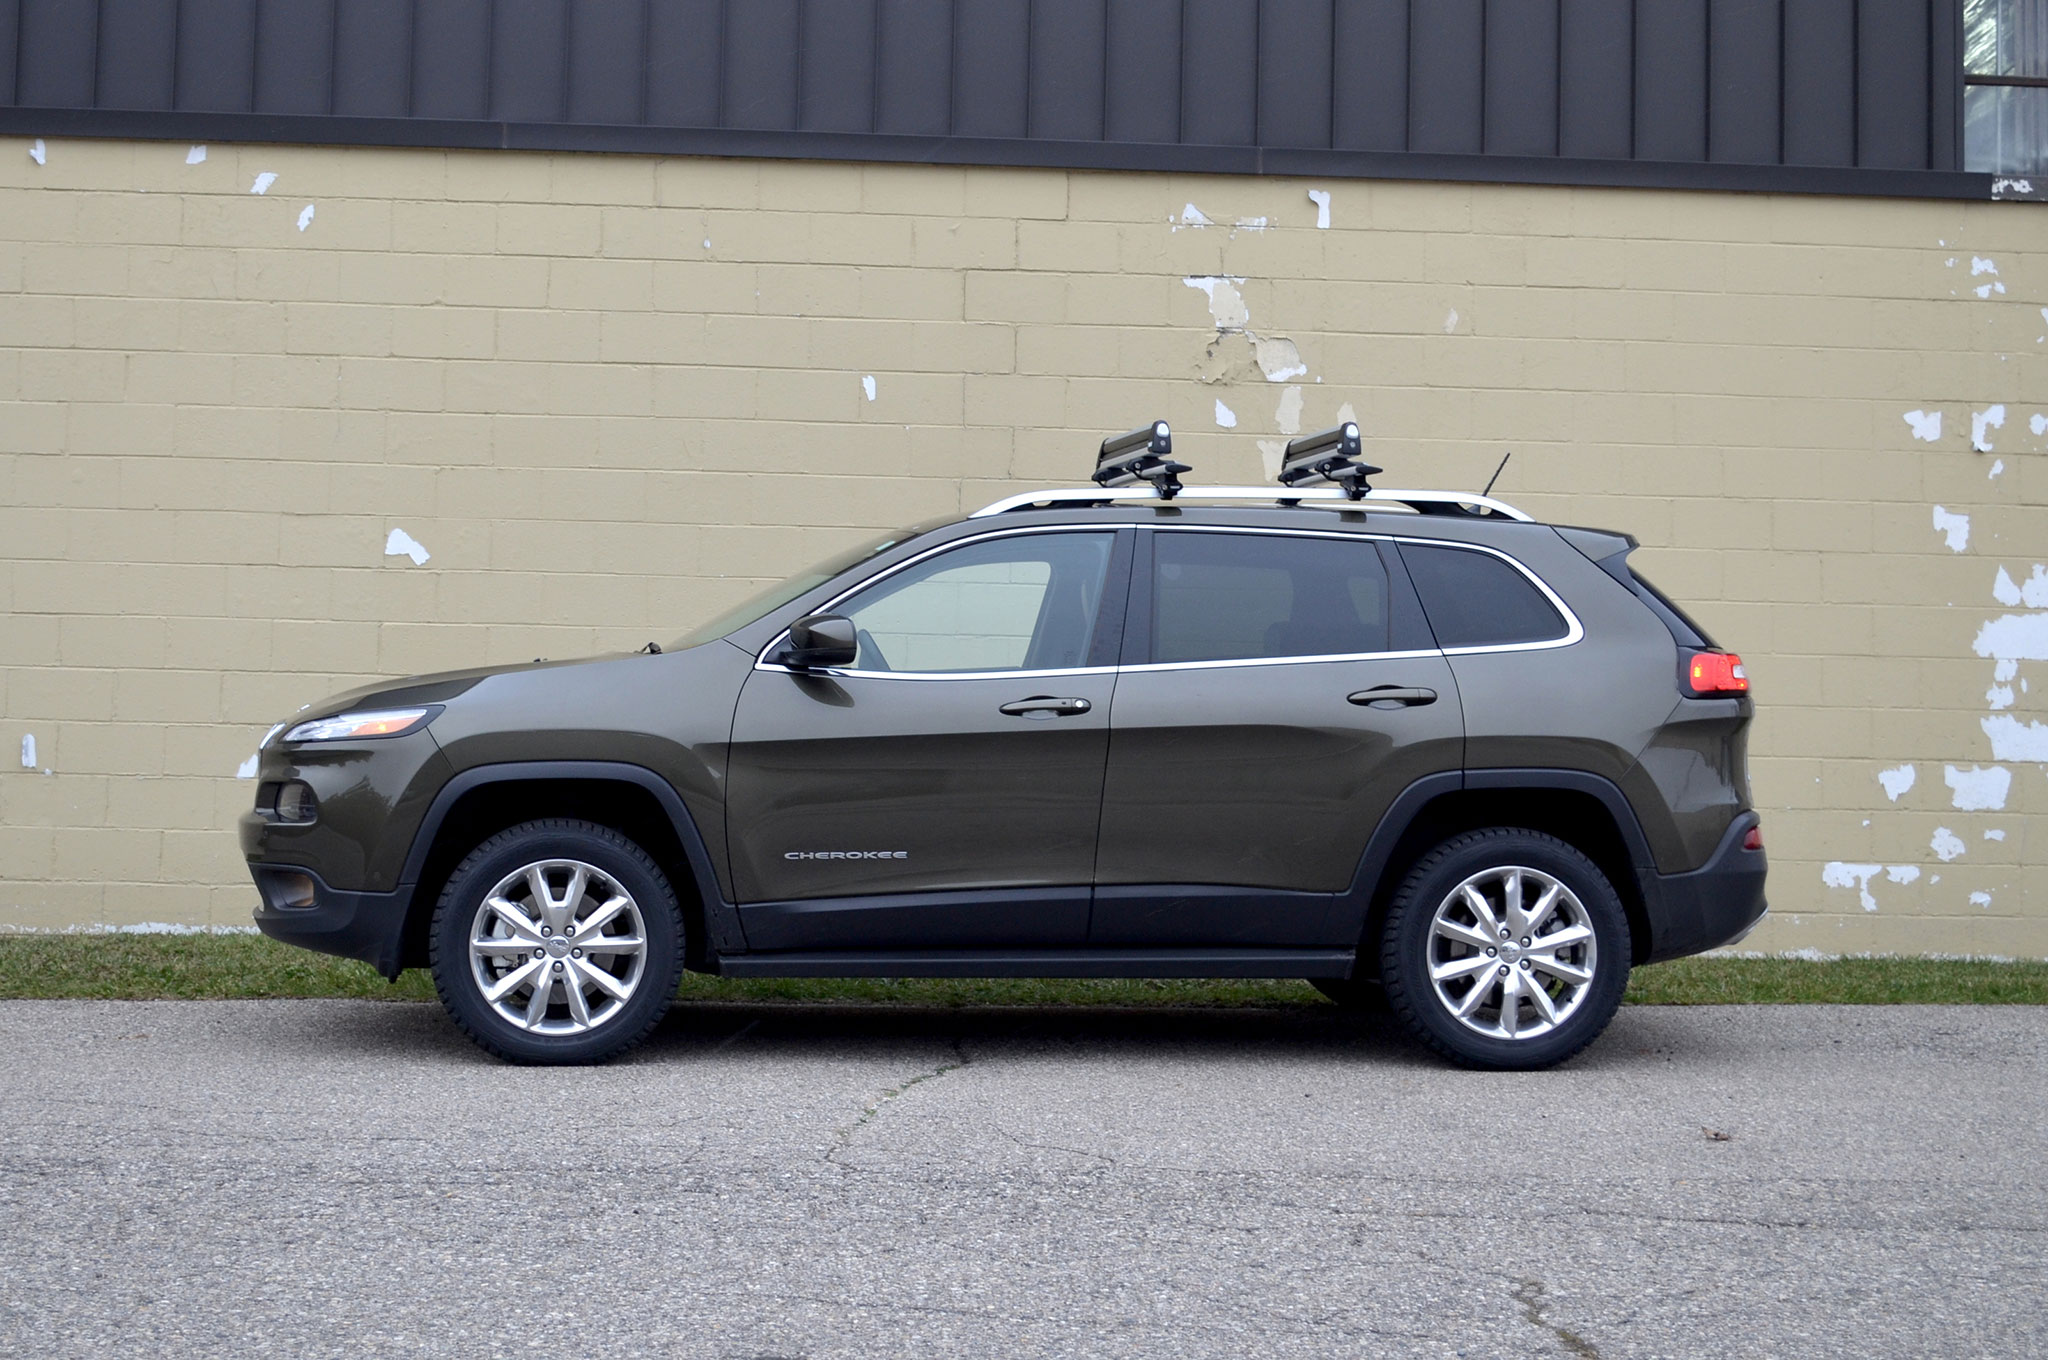 2014 Jeep Cherokee Limited With Roof Racks Profile